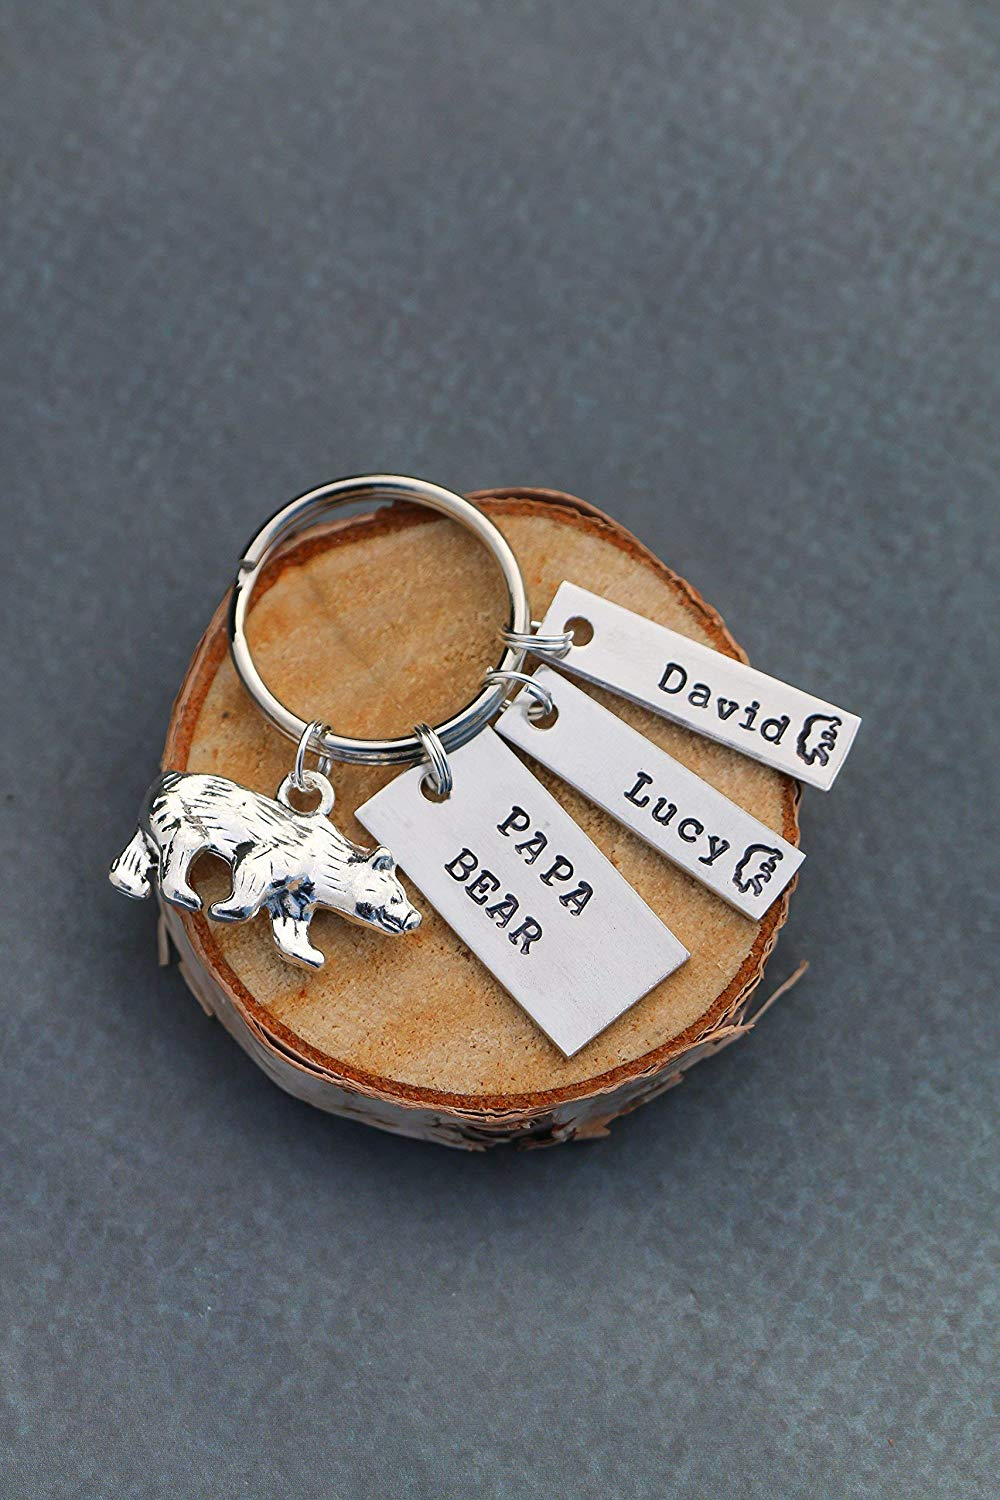 Bear Cub Keychain - DII ABC - Dad Gift - Father Present - Funny Birthday Idea - Stainless Steel Keyring - 1 x .5 inch Rectangle Disc - Ships 1 Business Day